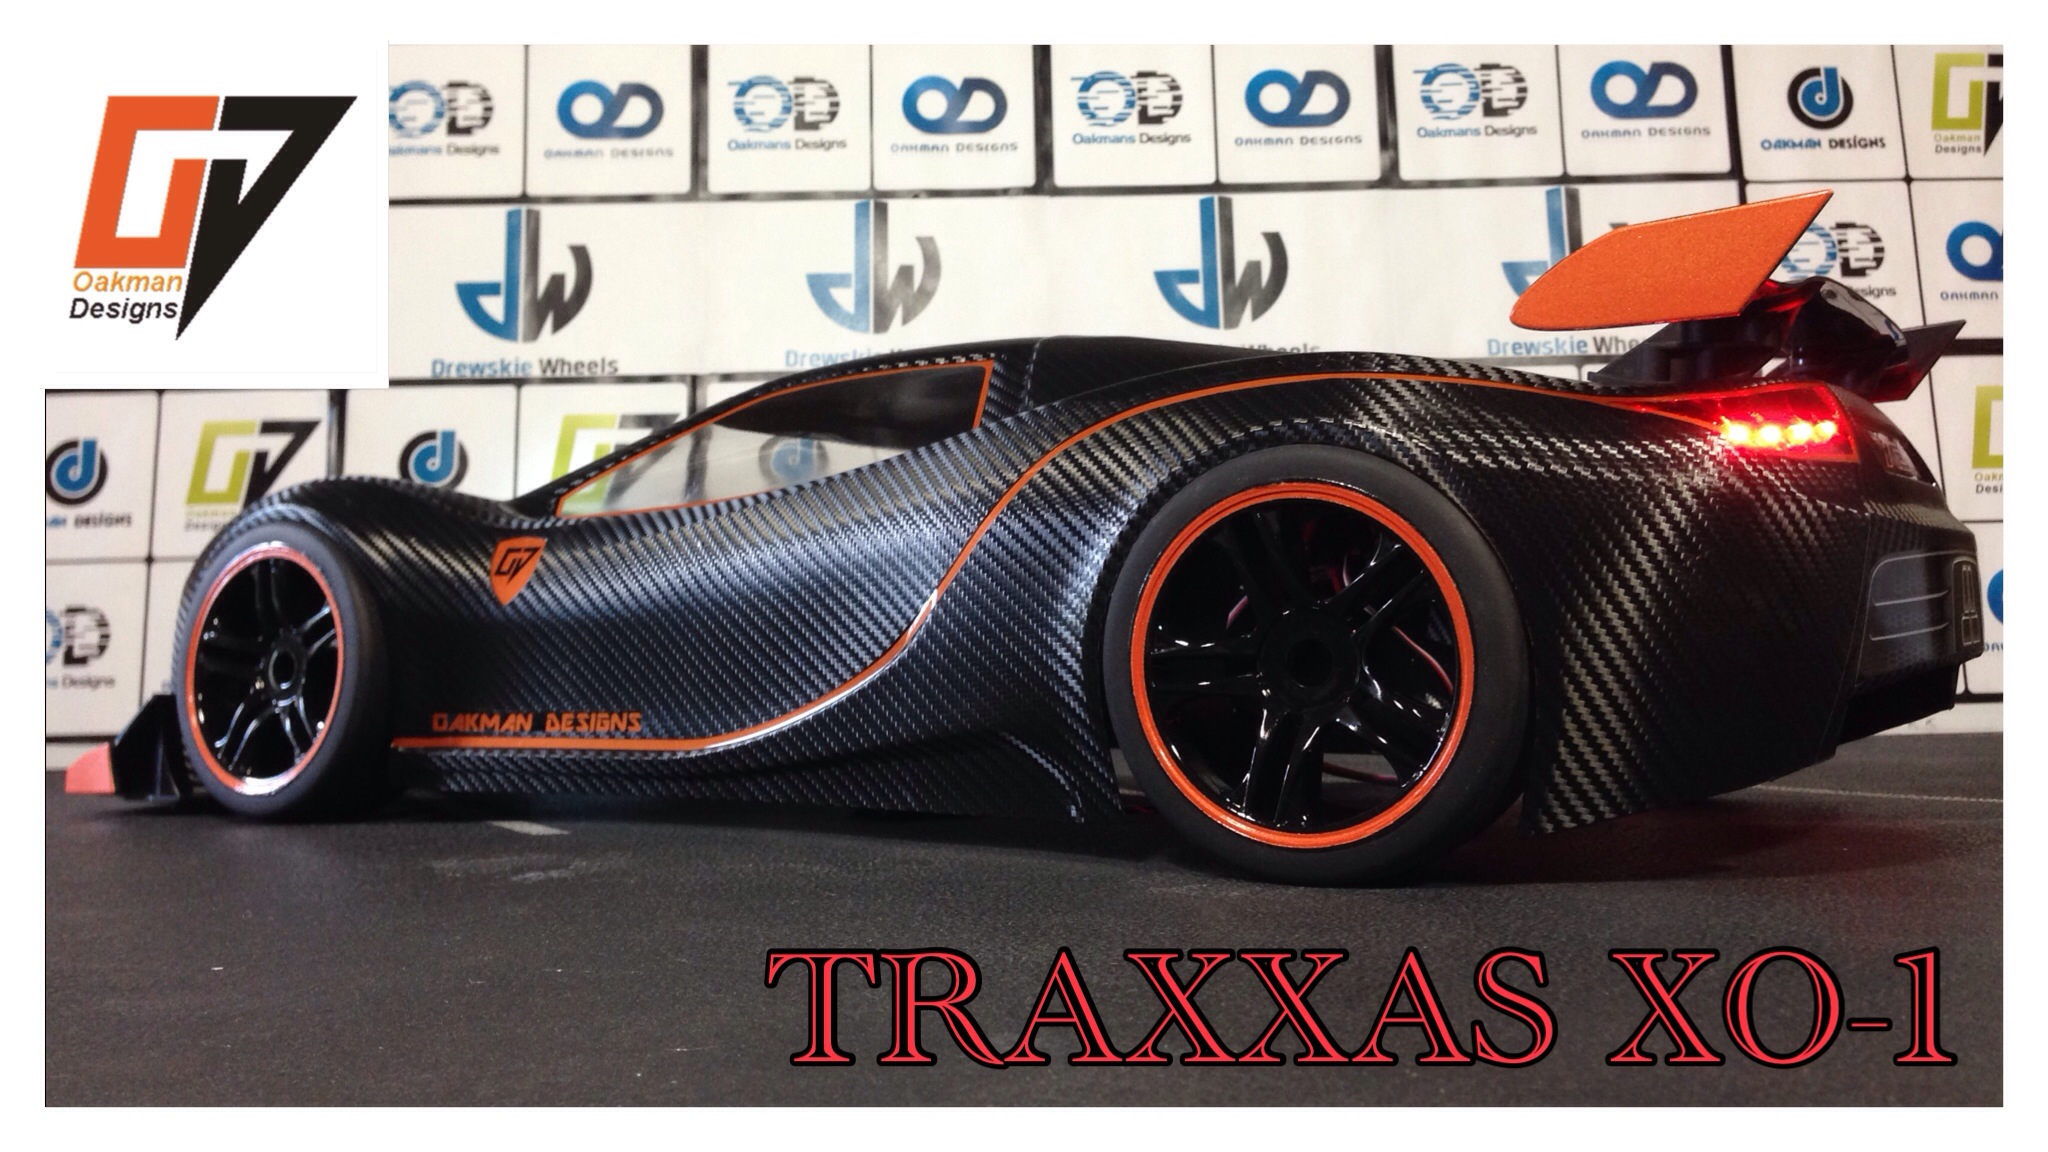 Traxxas XO1 carbon fiber body $180 plus $18 shipping in the us international shipping $38